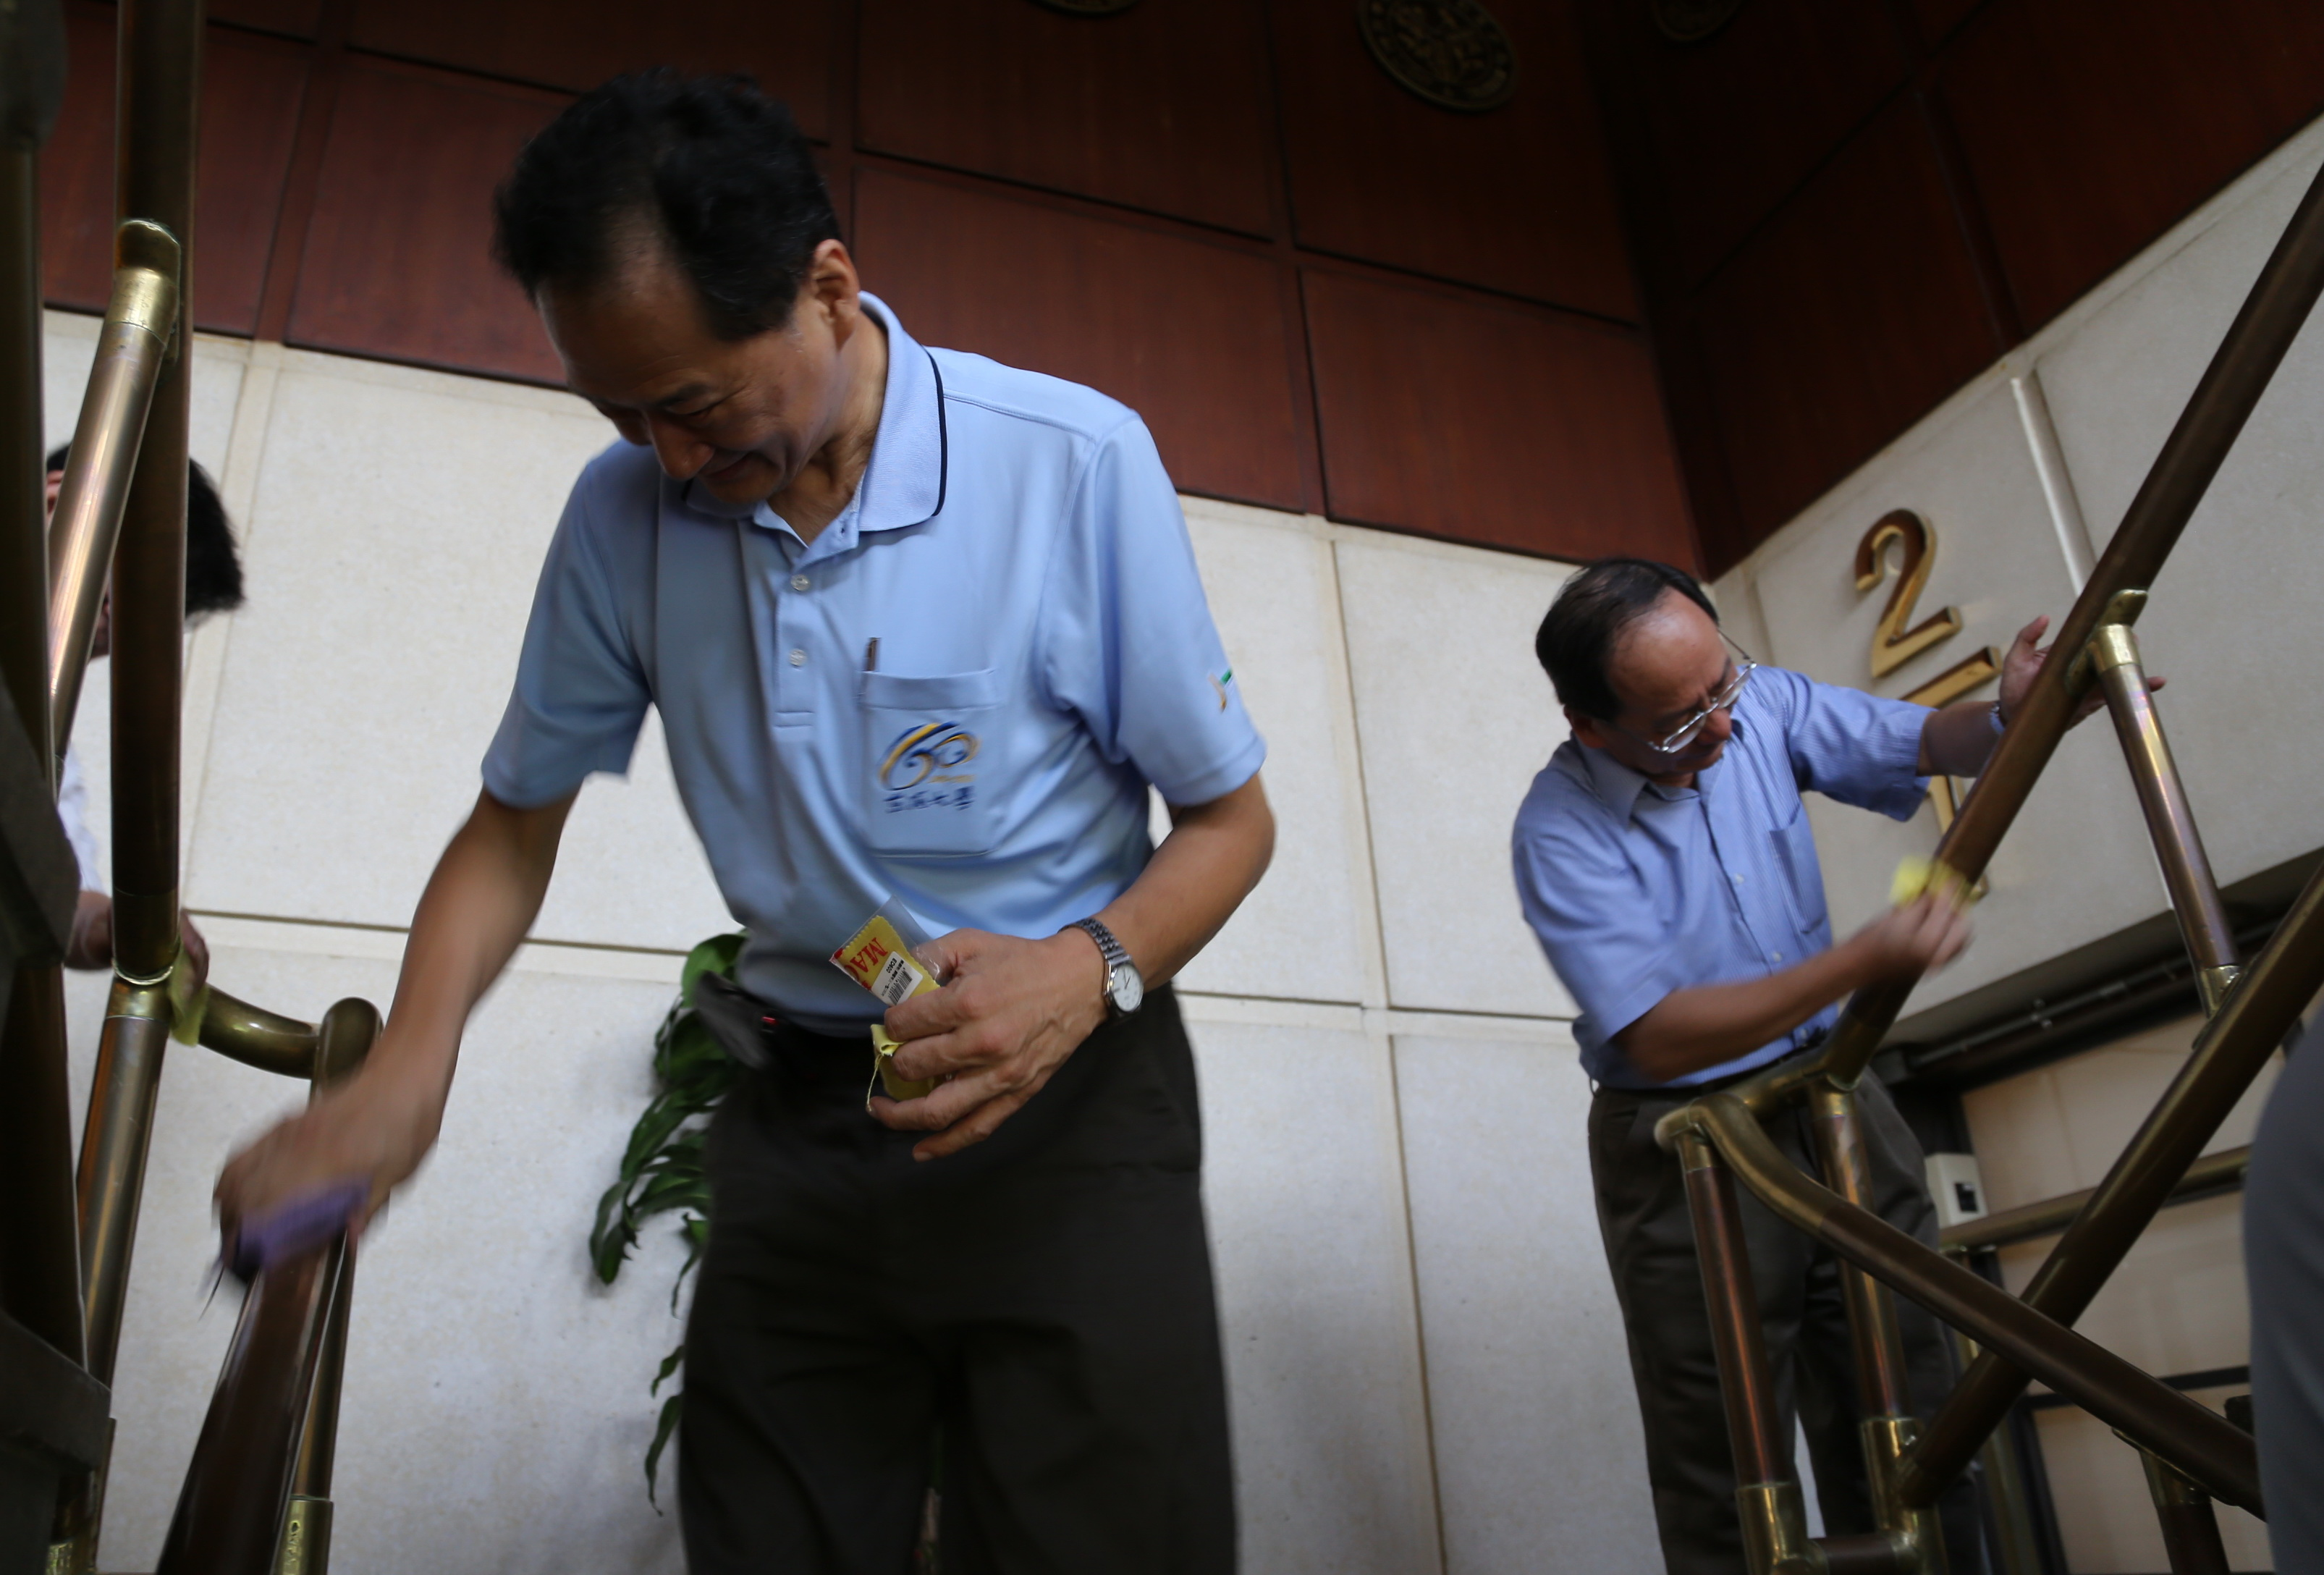 Yuan Zhuping, President of Tunghai University Alumni, and Wang Maojun, President of the University, wipe the office railing